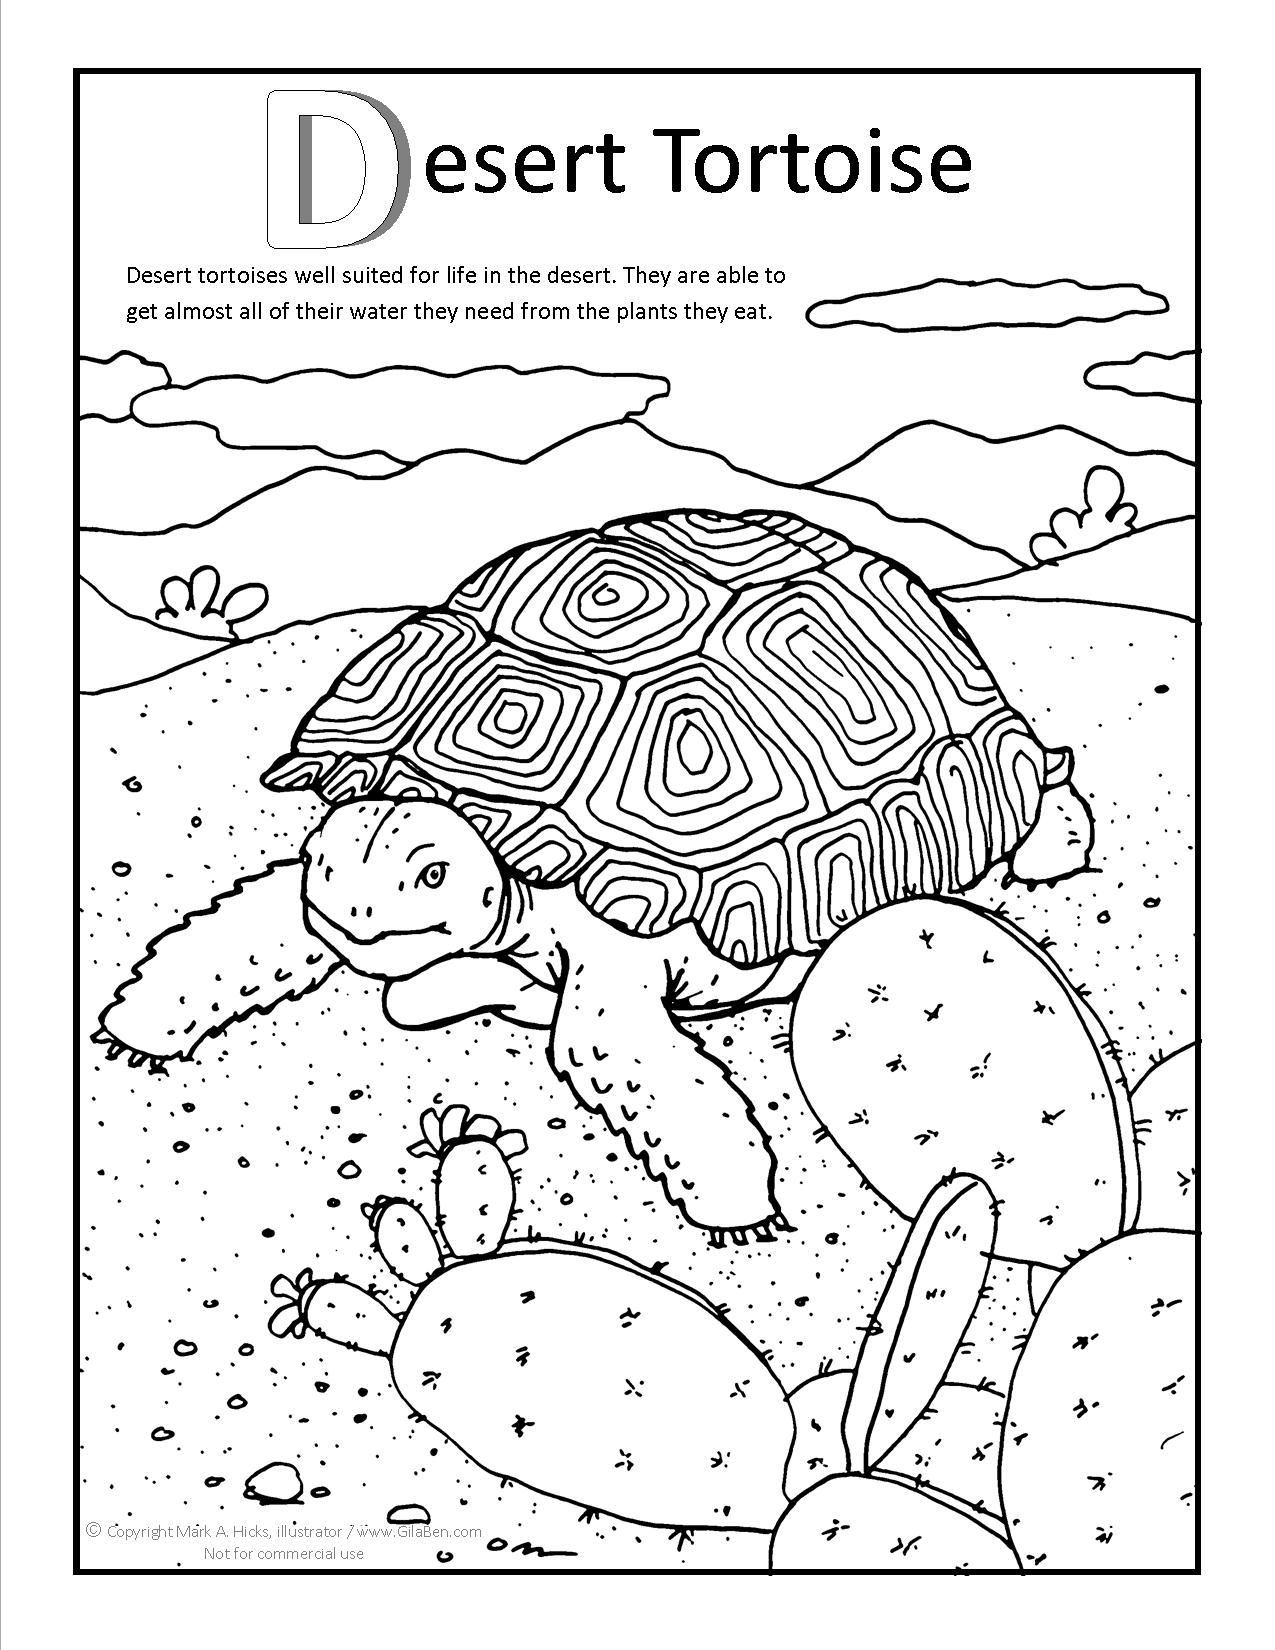 Desert Tortoise Coloring Page At Gilaben